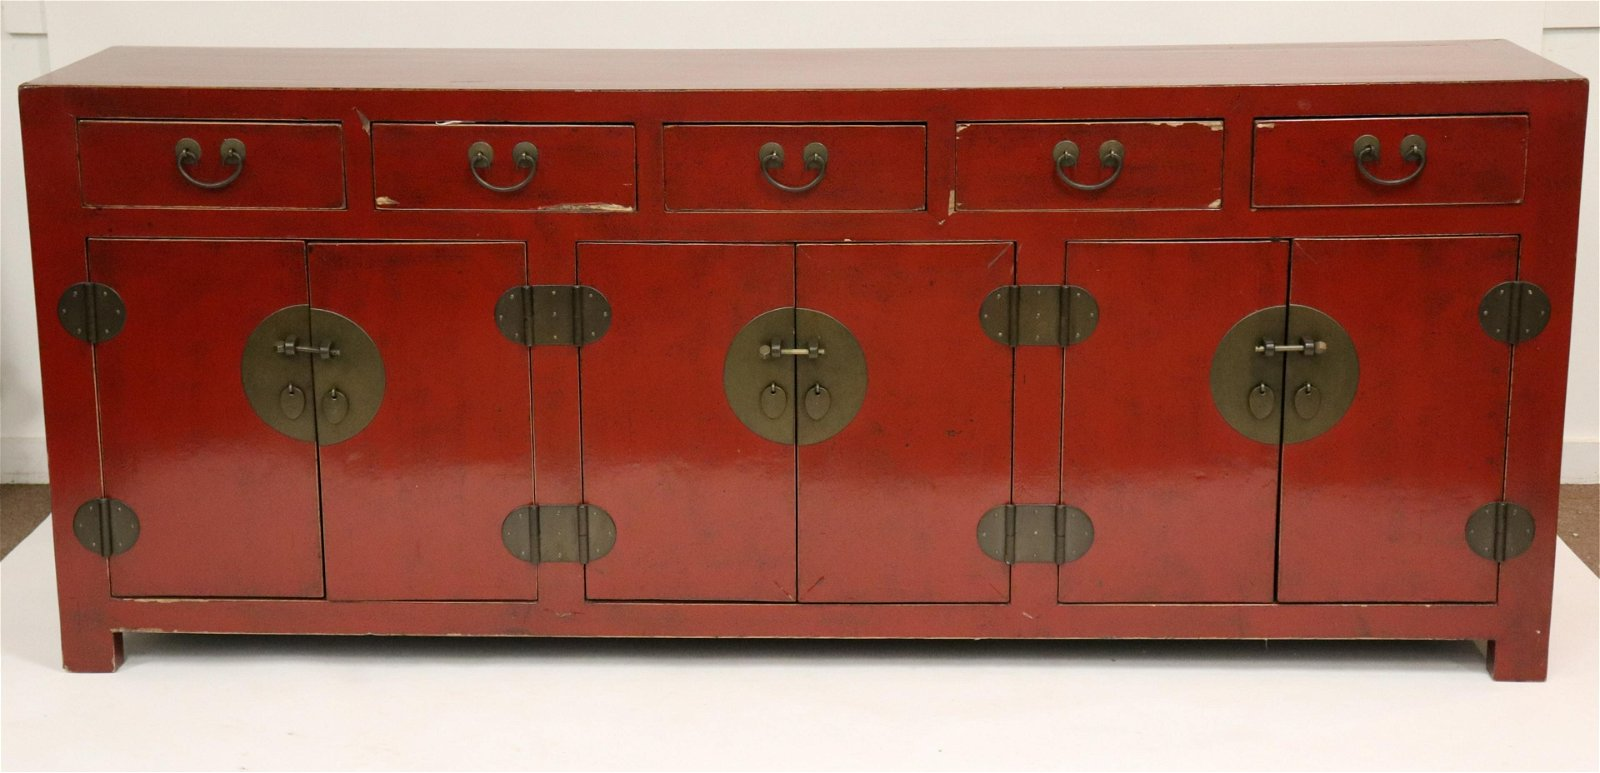 Chinese Red Lacquered Buffet, Shanxi region